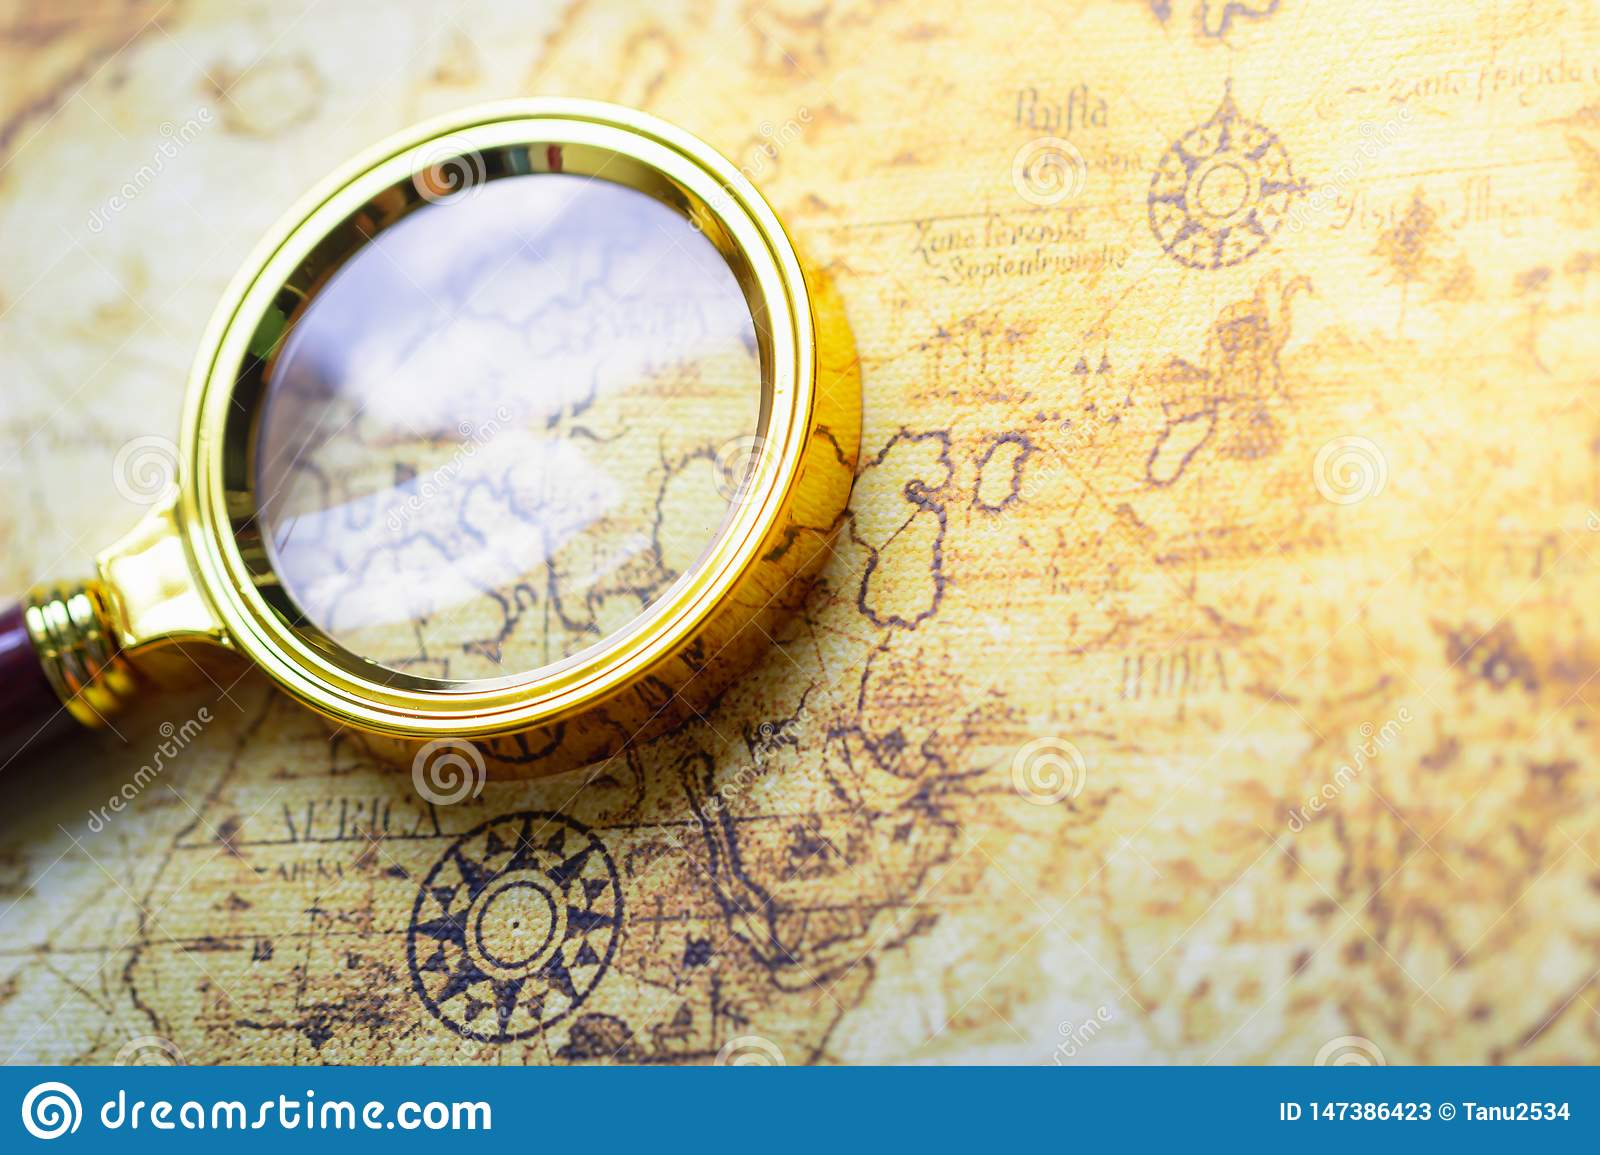 Magnifier on old map background.